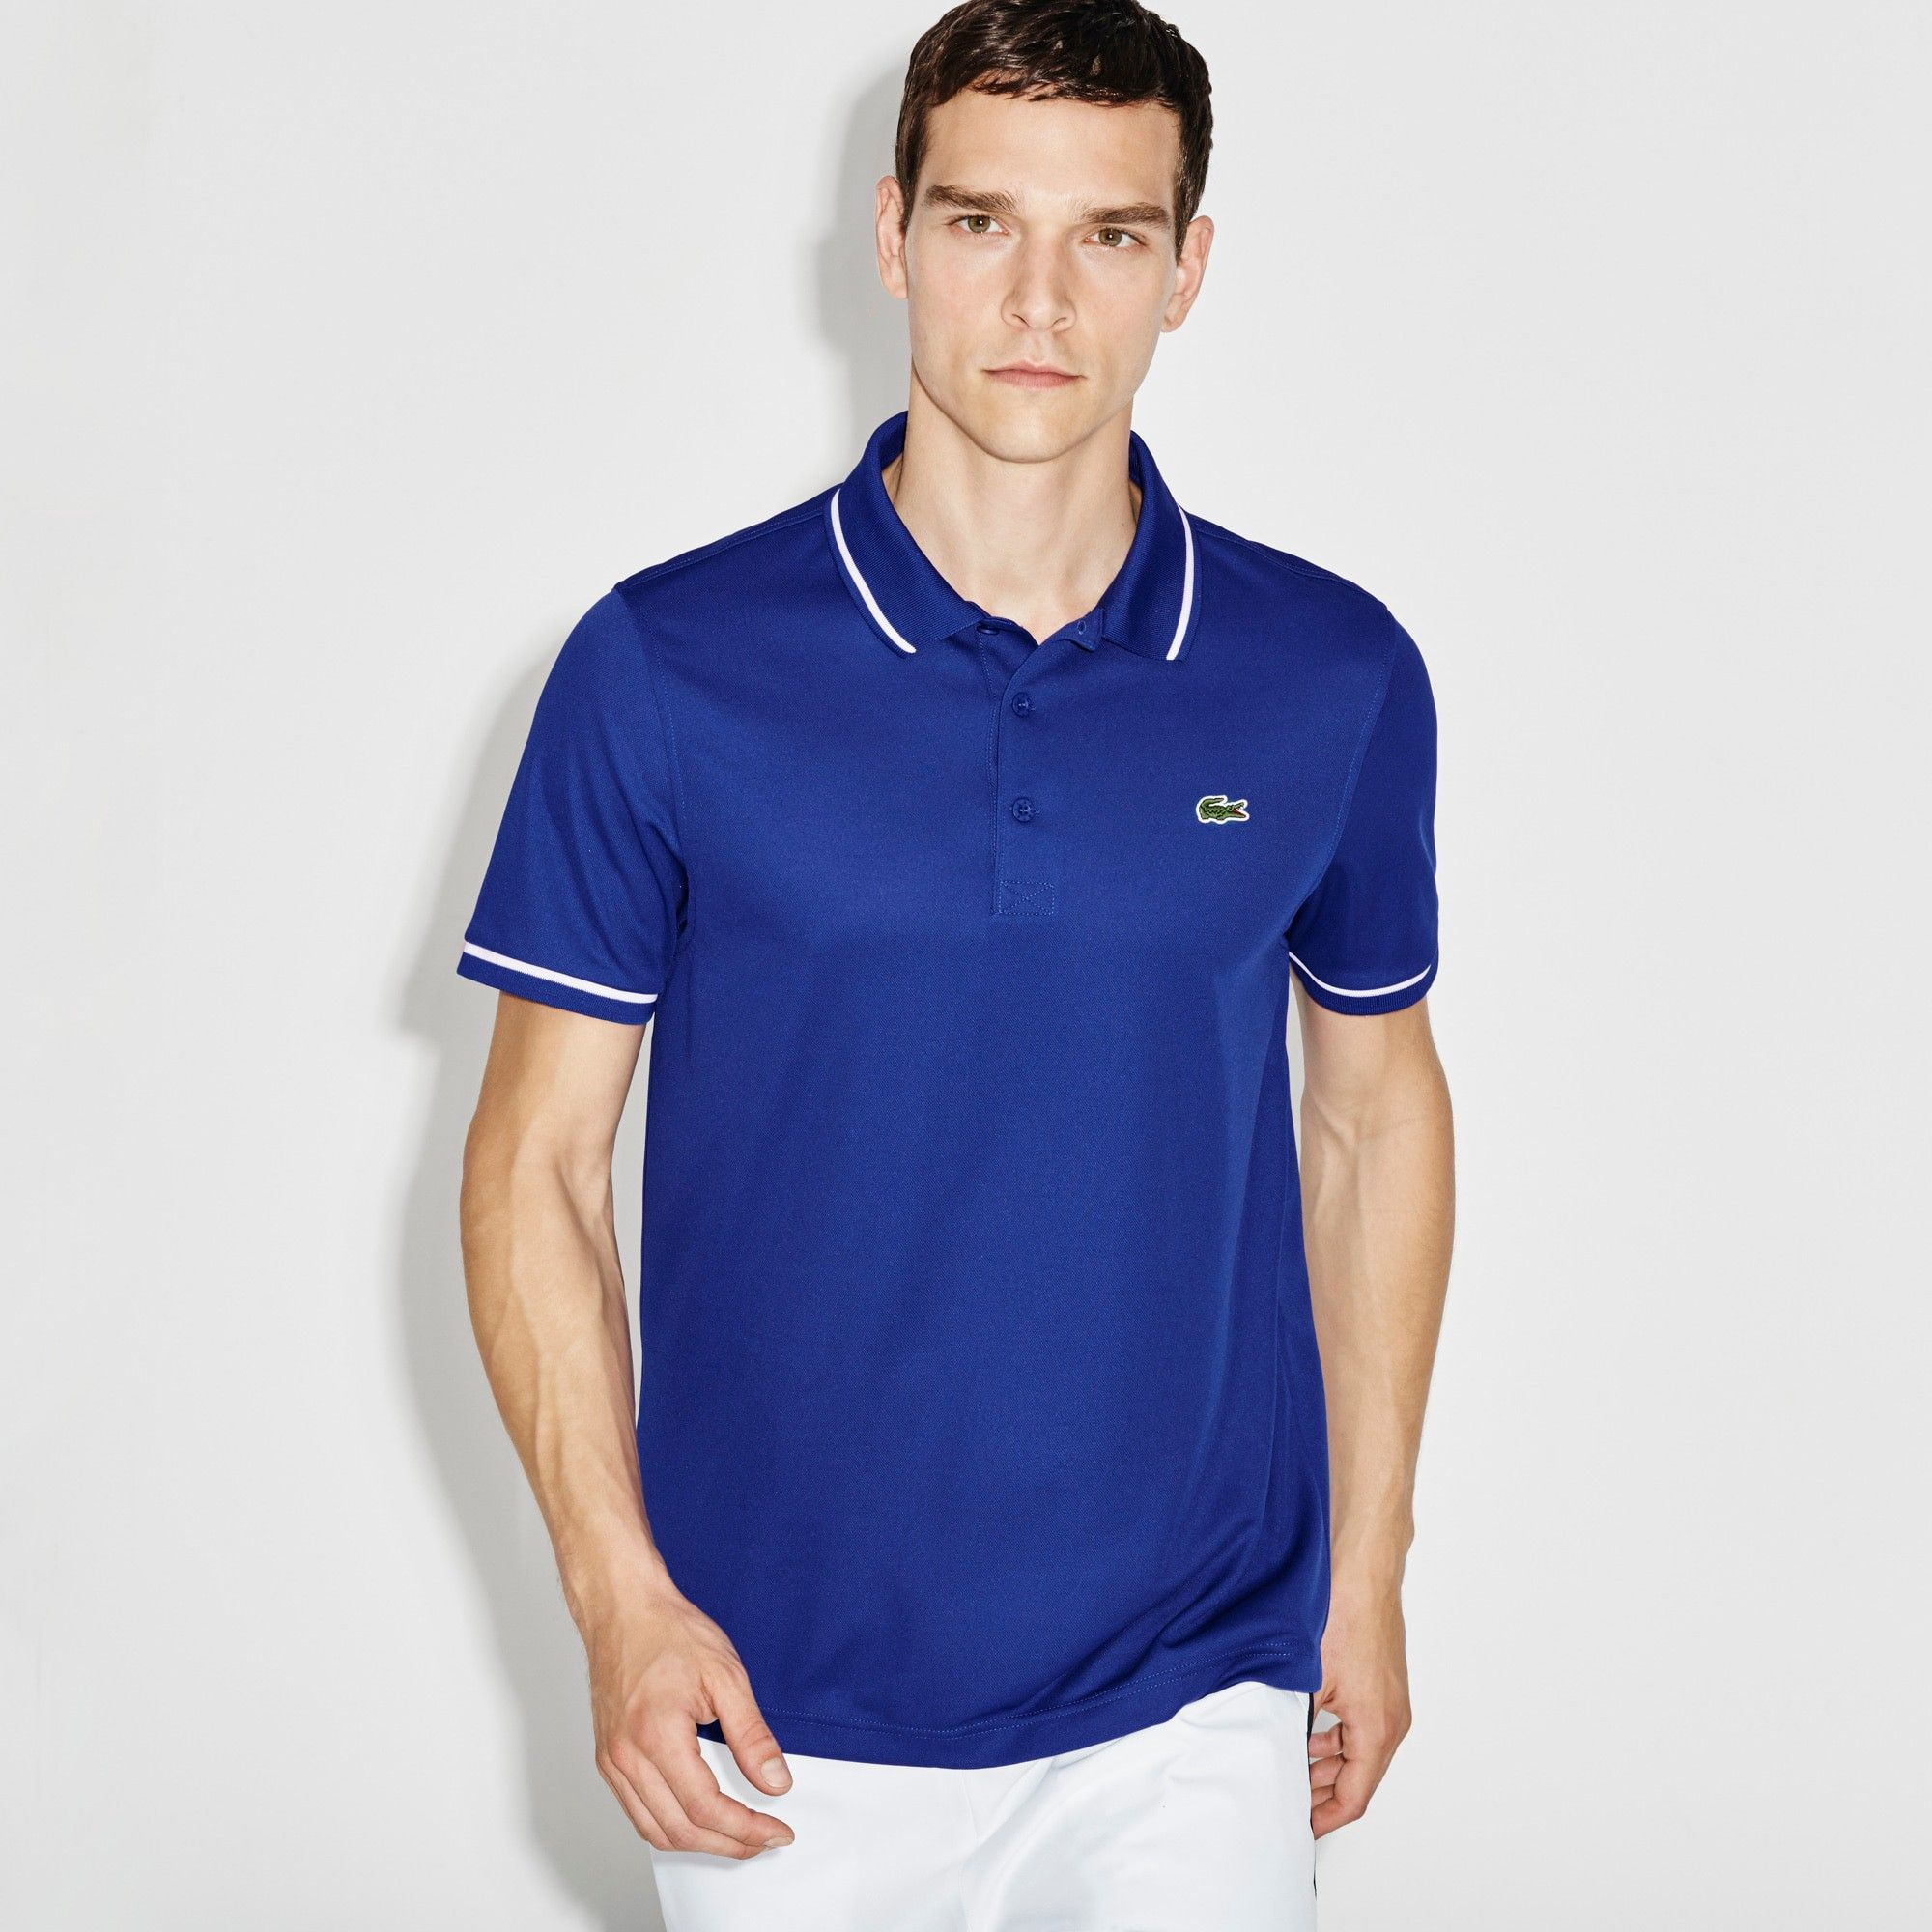 LACOSTE Men s SPORT Ultra-Dry Piping Tennis Polo Shirt - french royal  blue white.  lacoste  cloth   7971ab4c28e